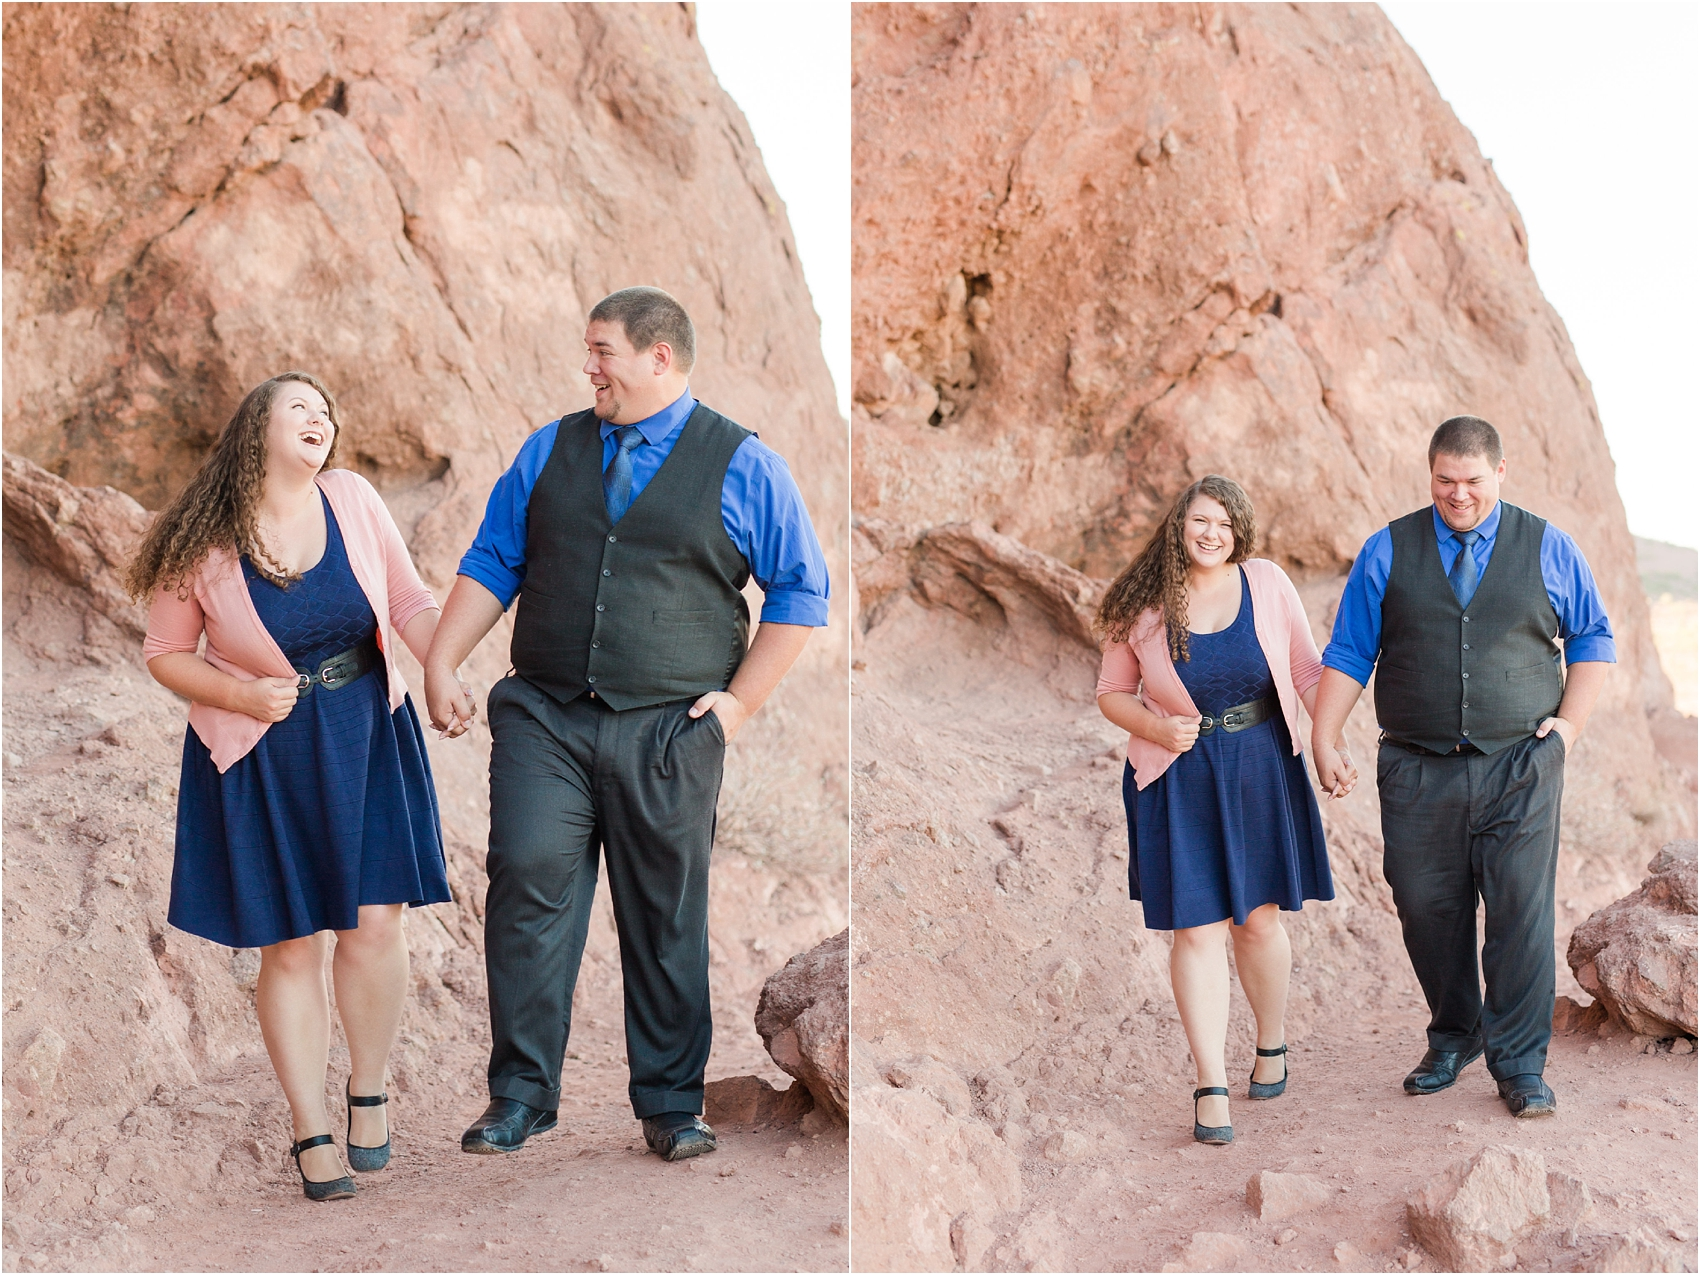 romantic-desert-engagement-photos-in-scottsdale-arizona-courtney-carolyn-photography-by-katelyn-james_0001.jpg